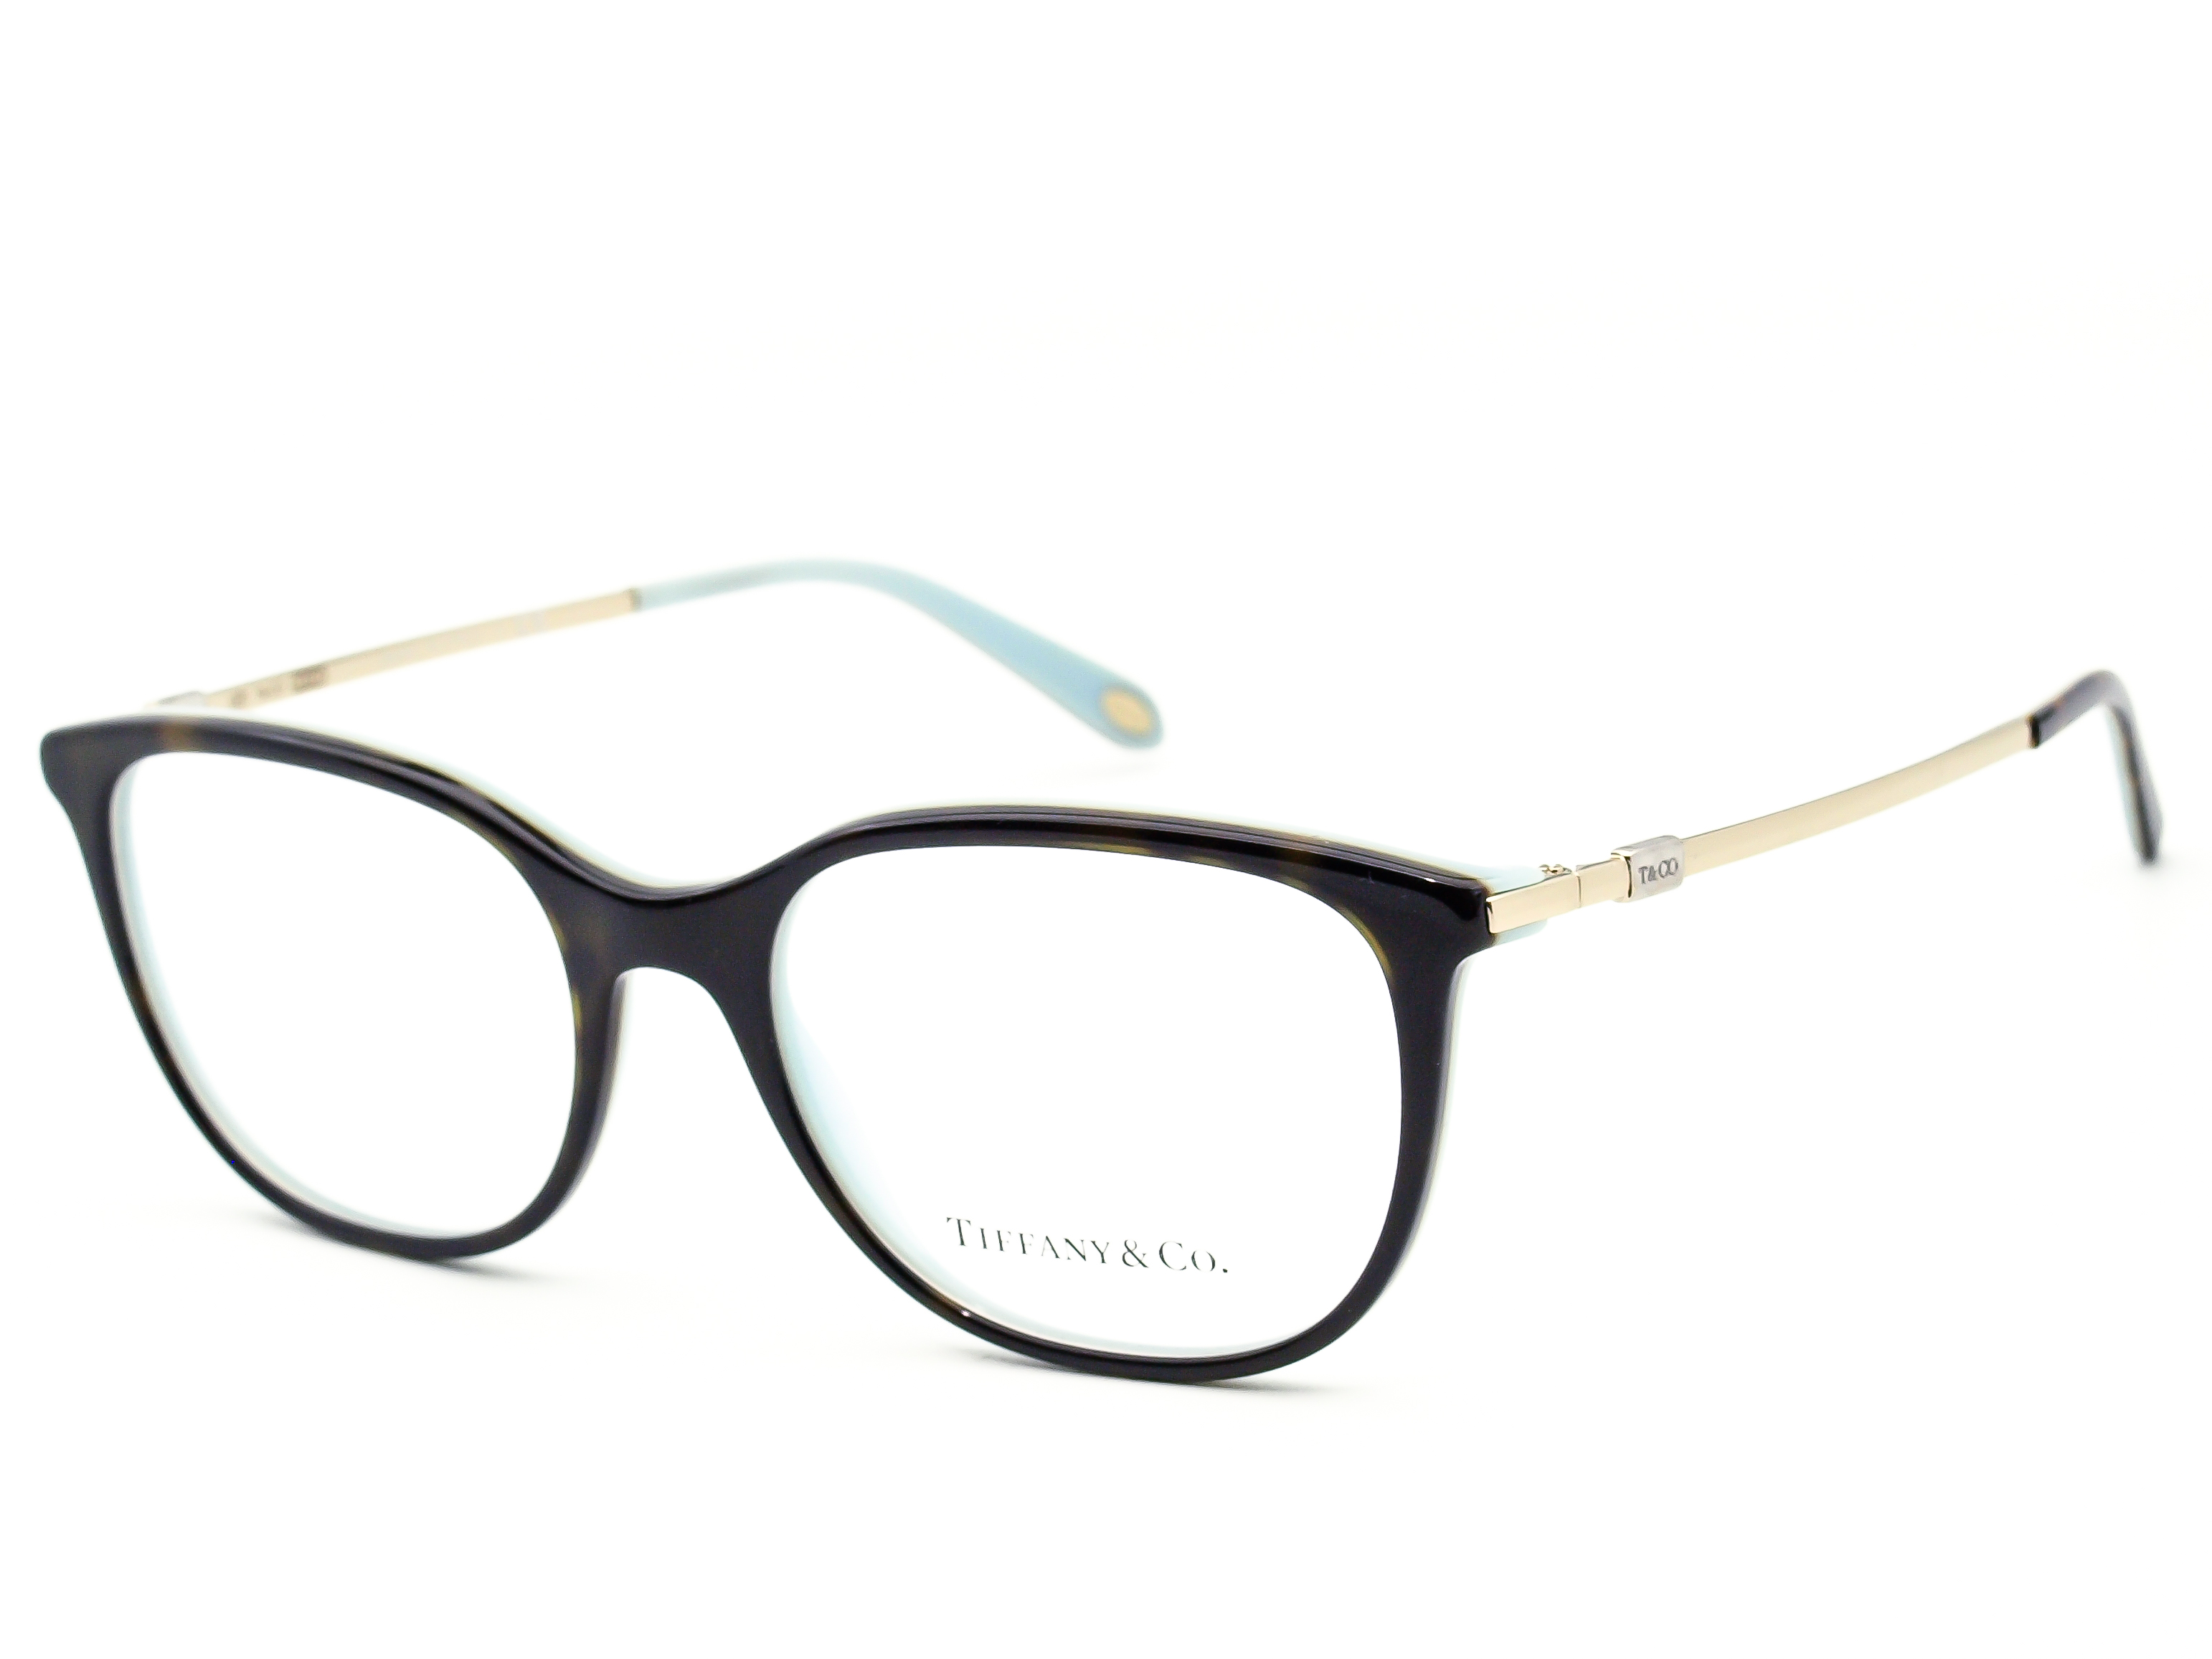 Tiffany & Co. TF 2149 8134 Eyeglasses